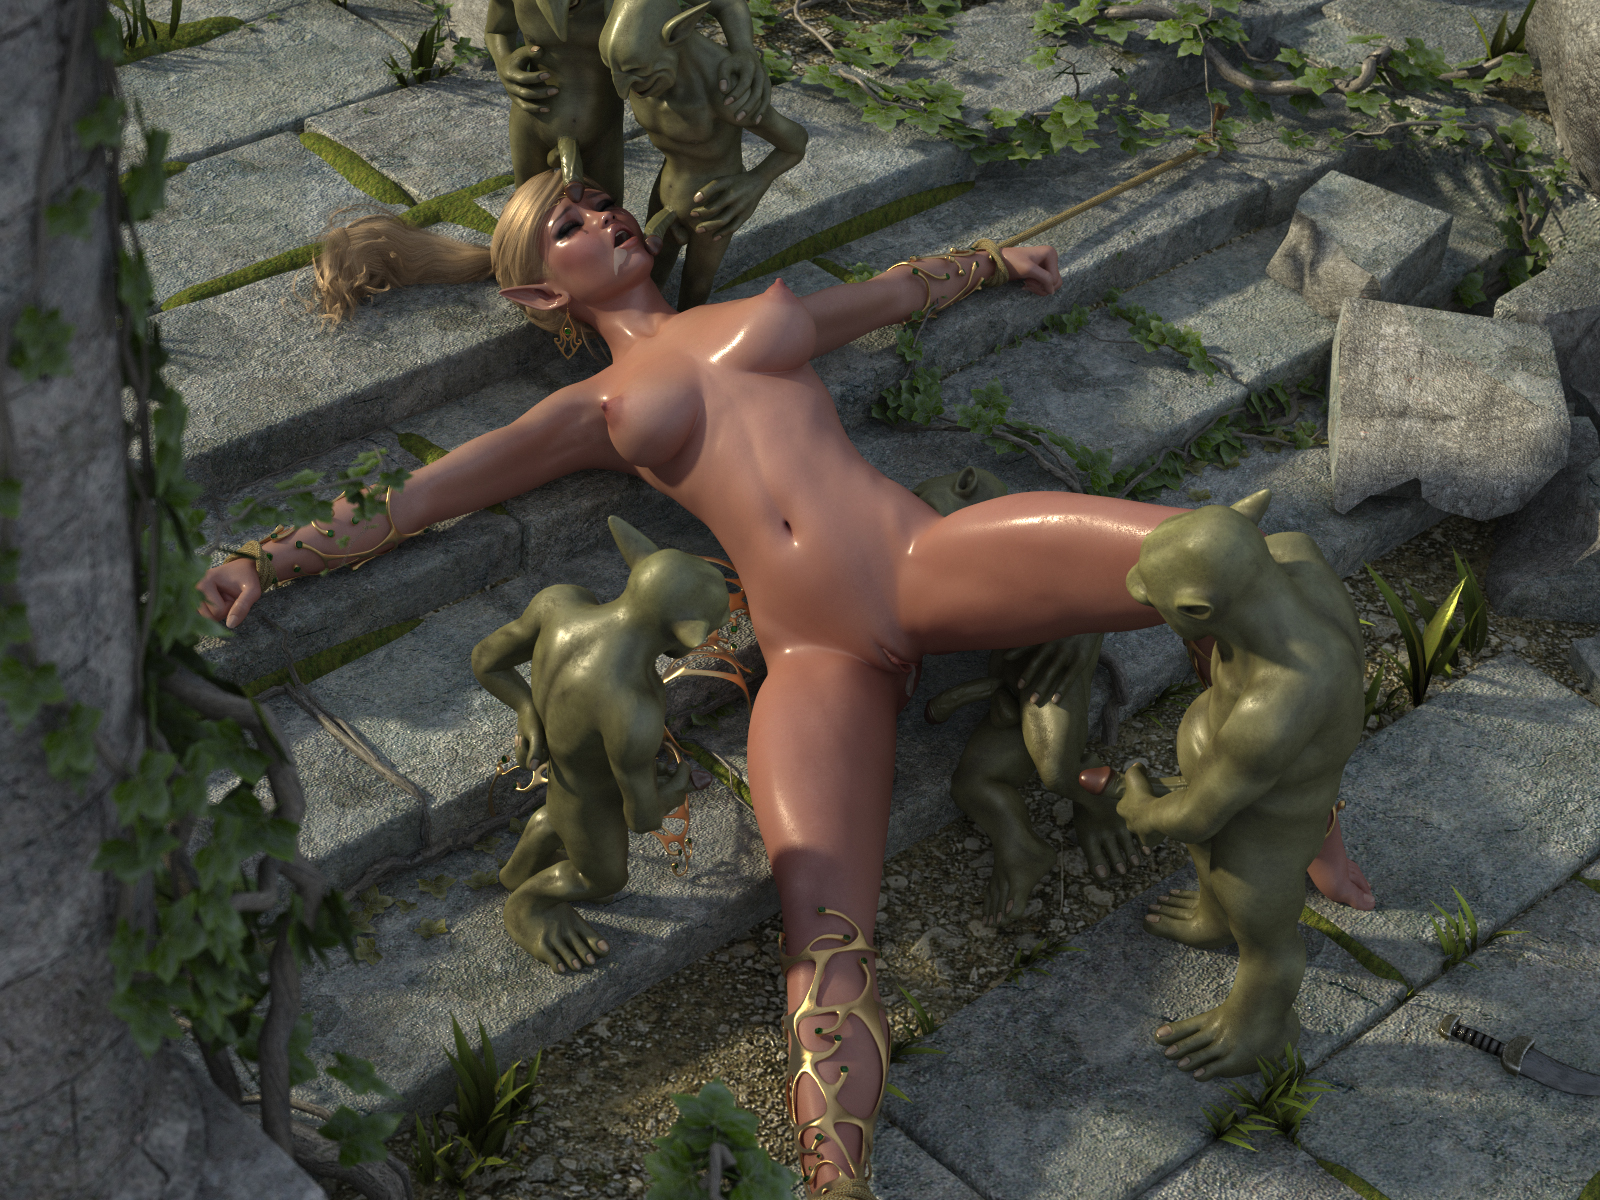 Orcs gang rape elf girl naked scene